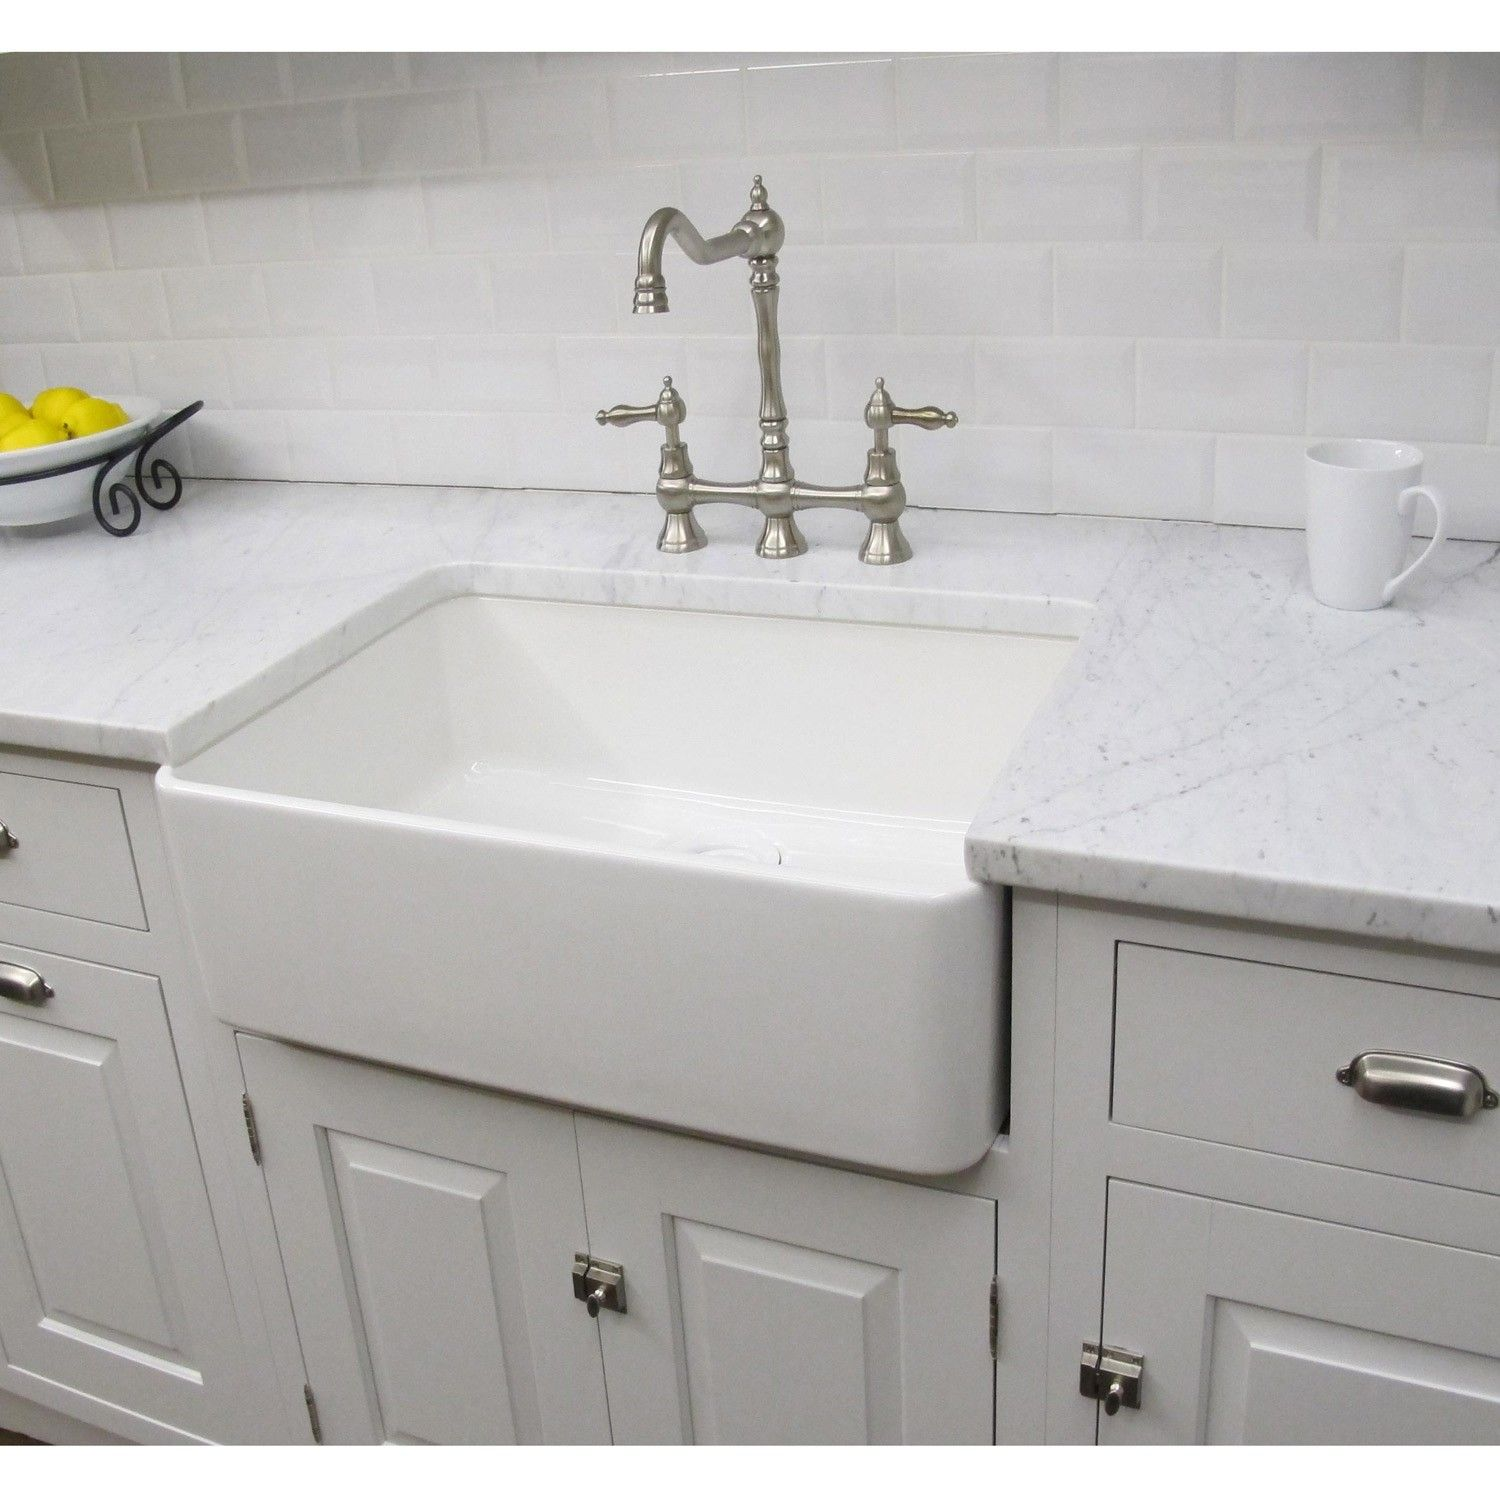 Constructed of fireclay, this large bathroom sink has a classic ...